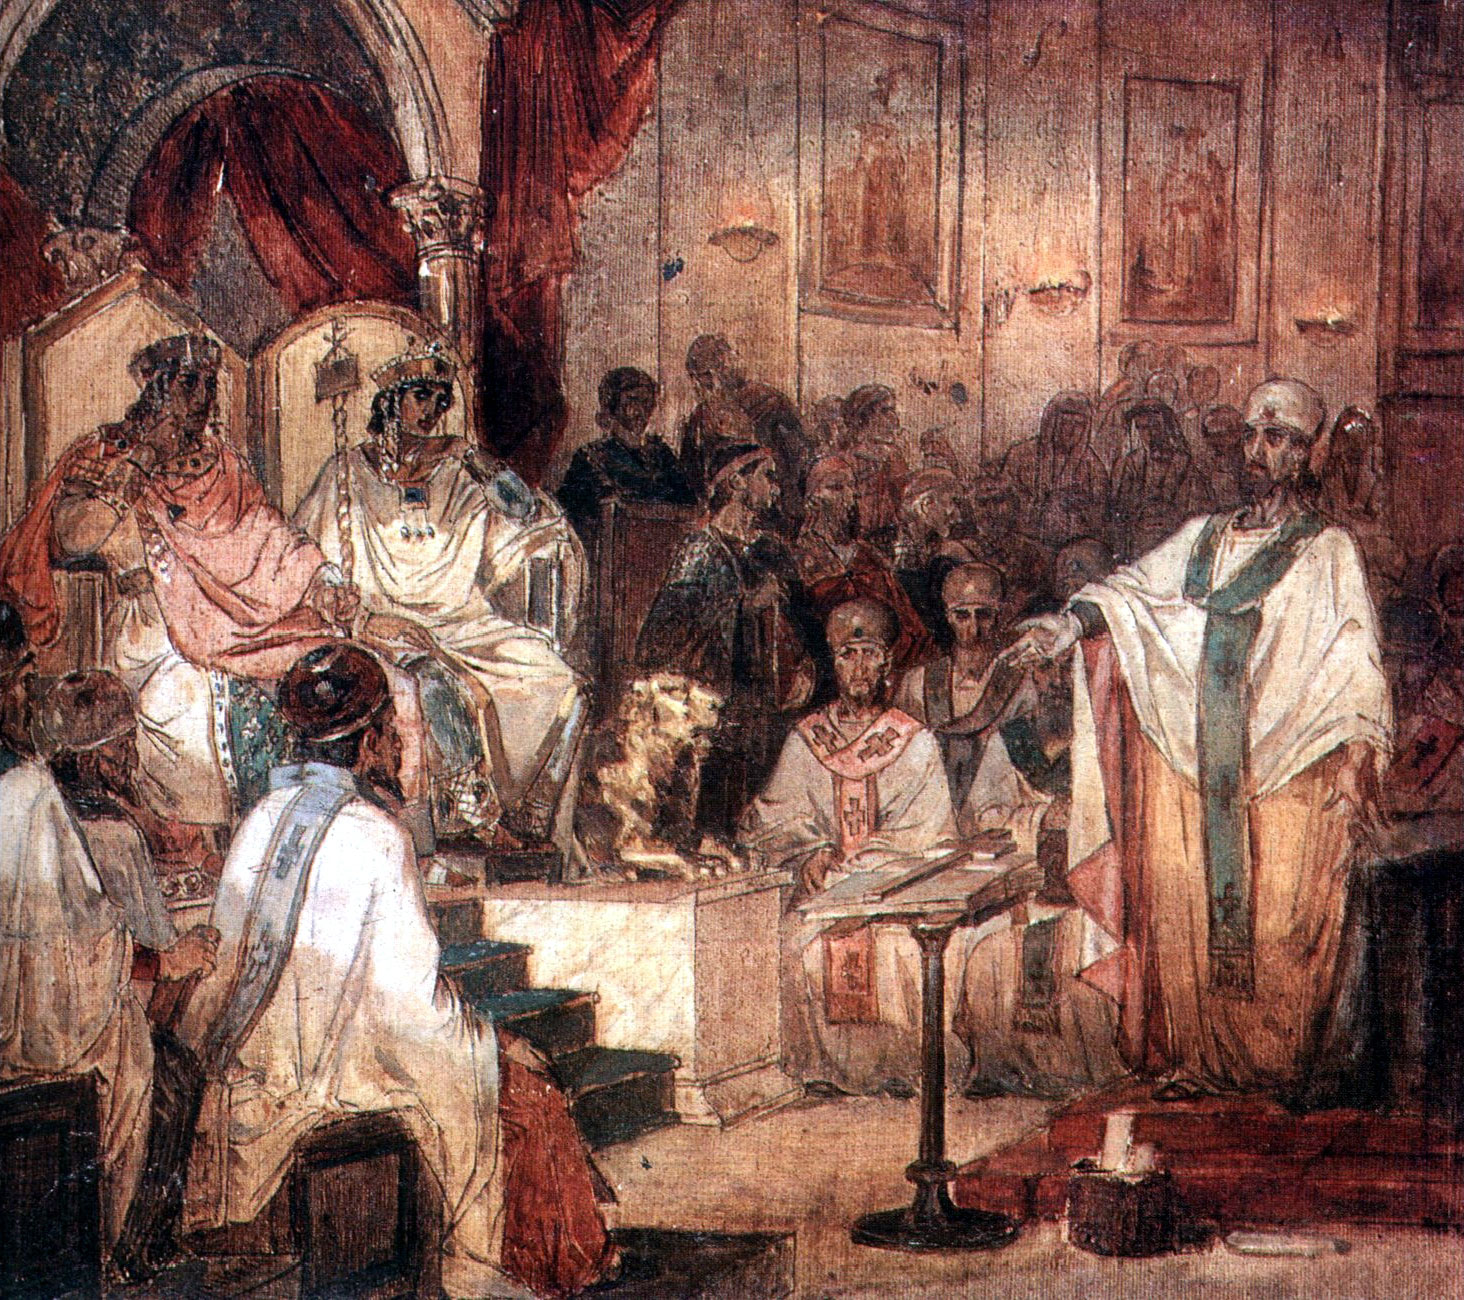 Vasily Surikov's painting of the Council of Chalcedon